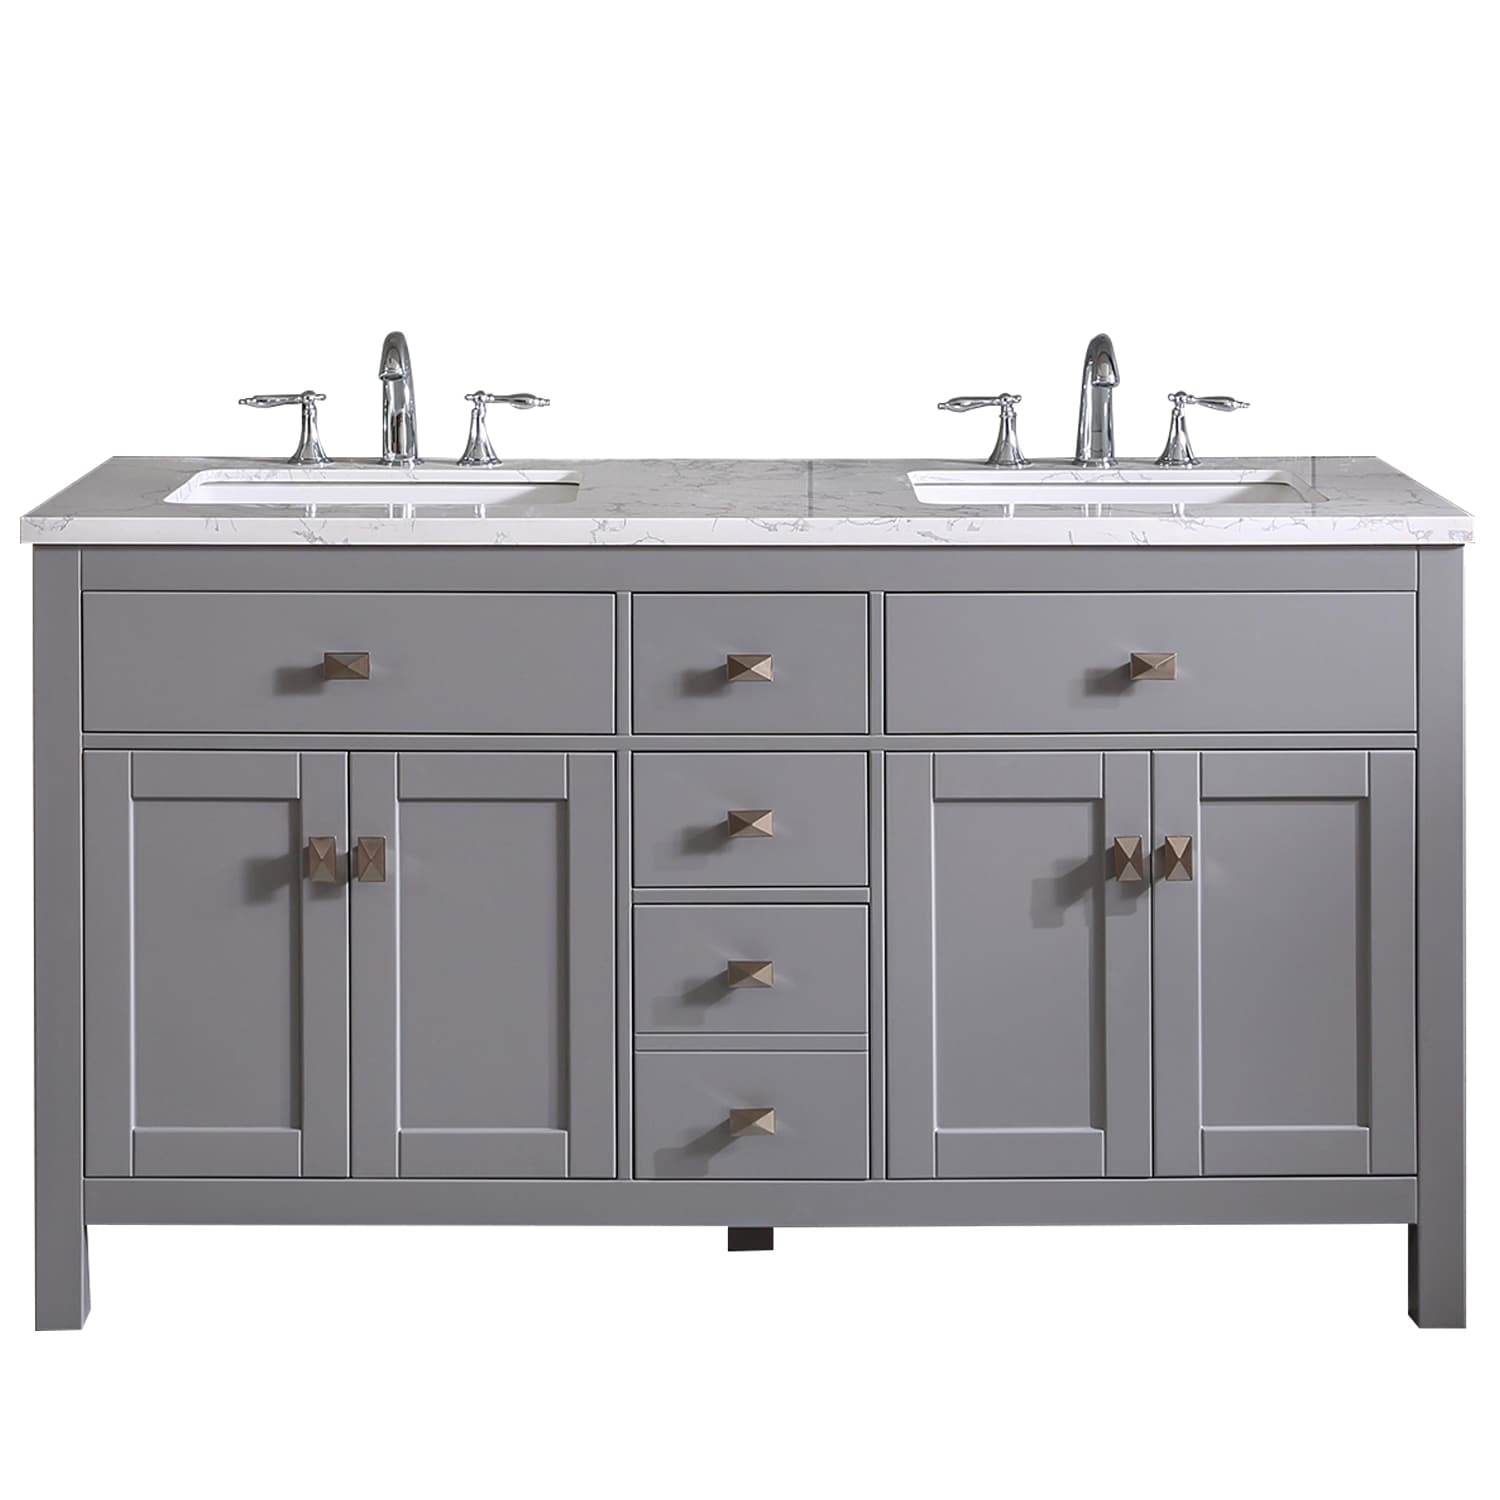 Totti Memphis 60 Gray Transitional Double Sink Bathroom Vanity W White Carrara Style Man Made Stone Top Overstock 32352438